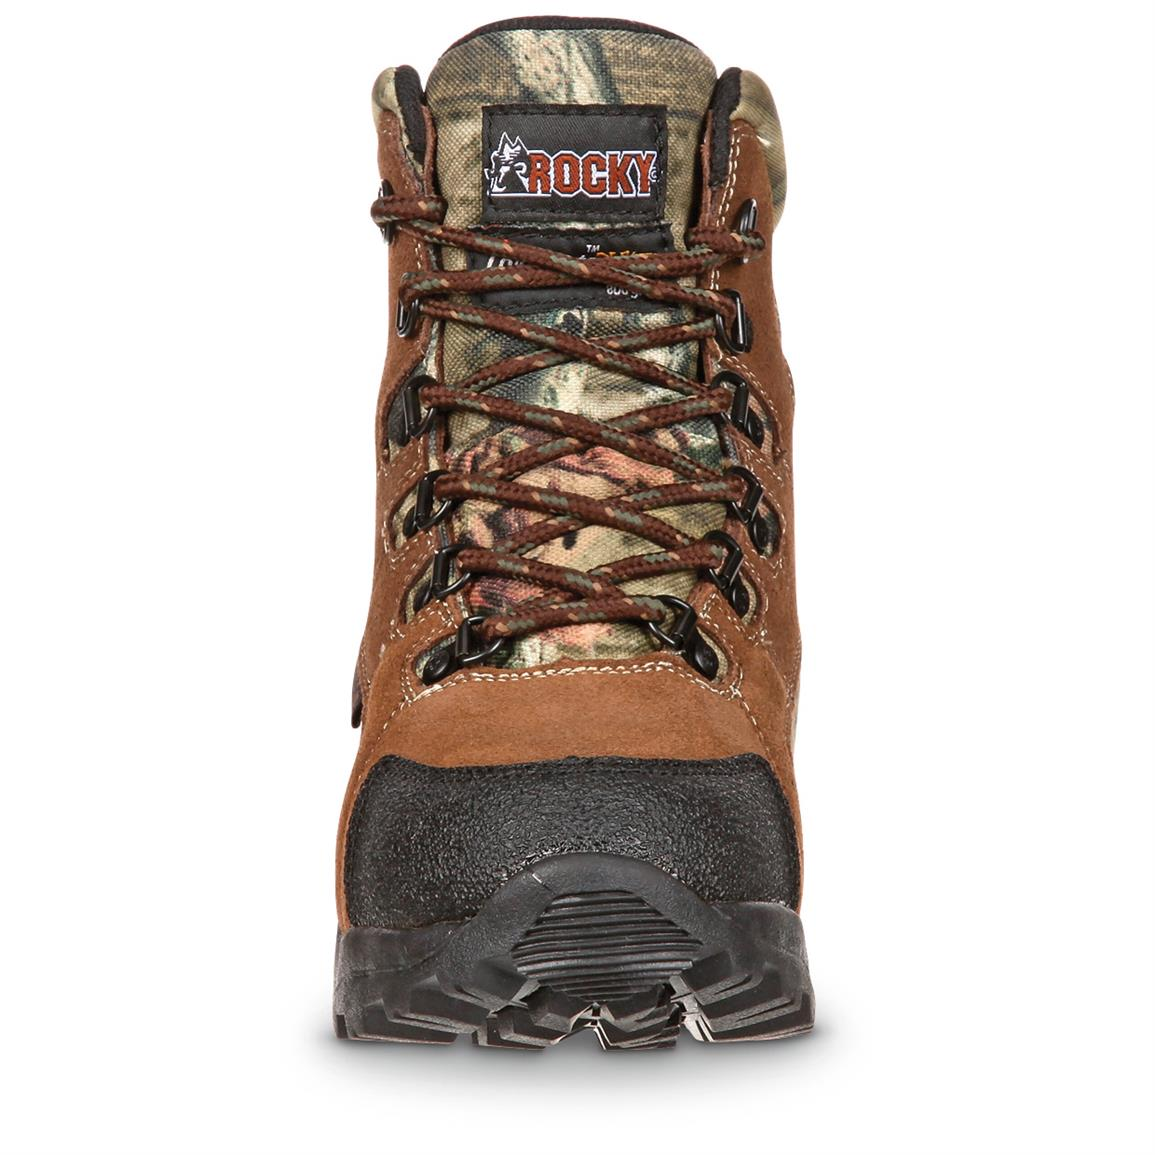 Guaranteed Rocky Waterproof construction for 100% sure-dry feet